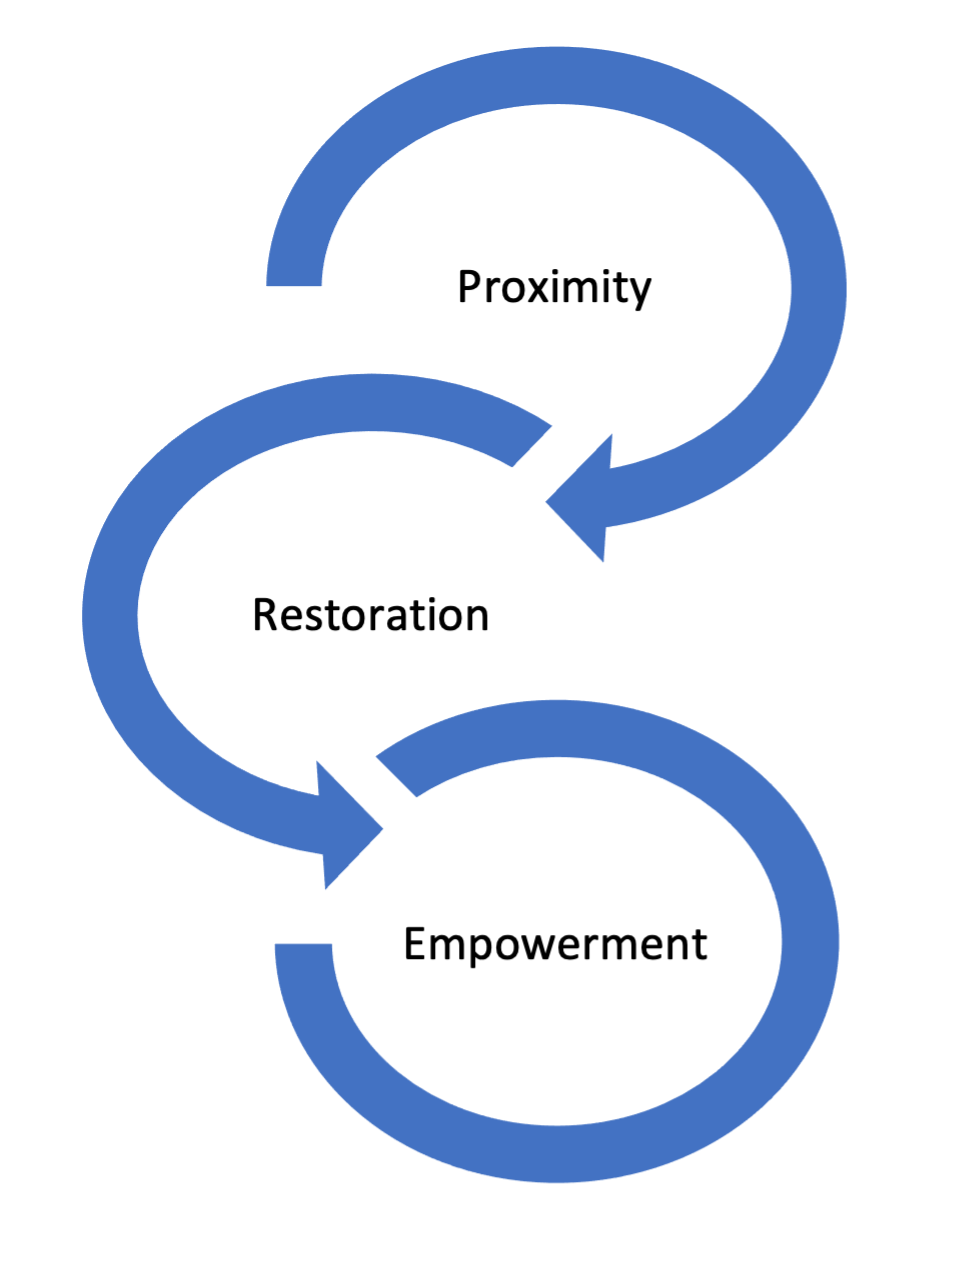 Diagram showing proximity, restoration and empowerment connected by circles and arrows.